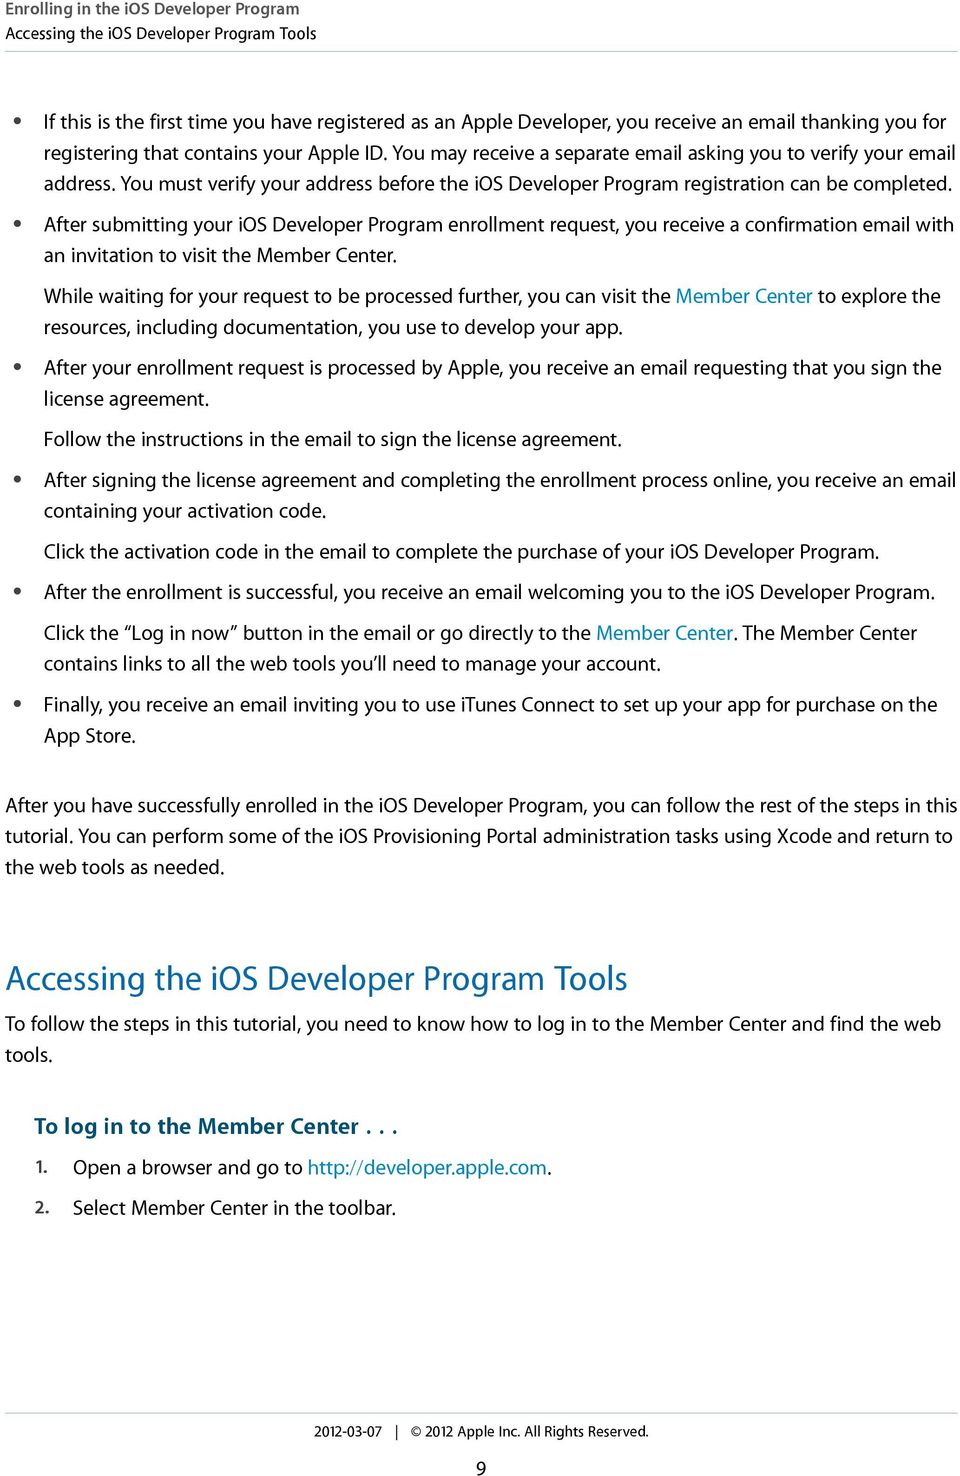 After submitting your ios Developer Program enrollment request, you receive a confirmation email with an invitation to visit the Member Center.